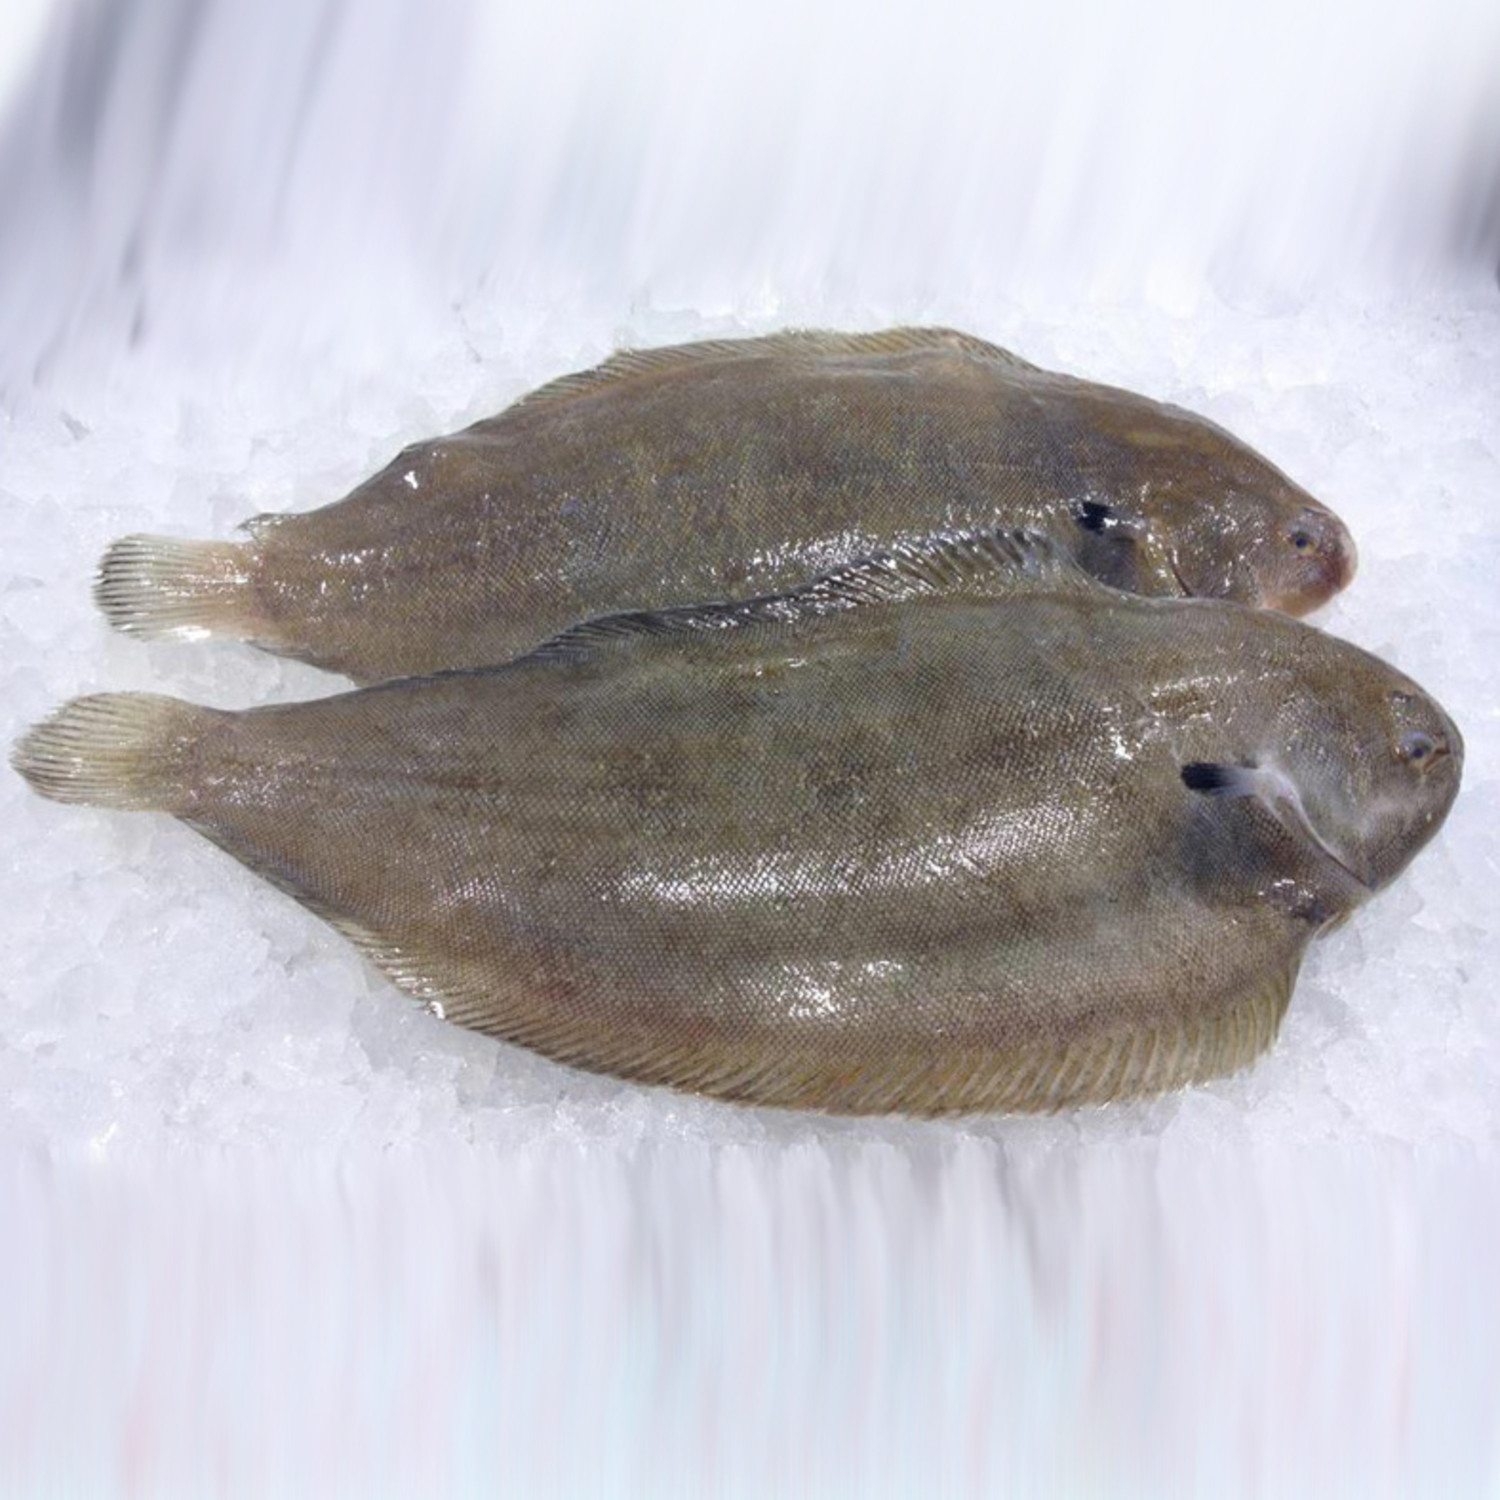 Dover sole inland seafood for Dover sole fish